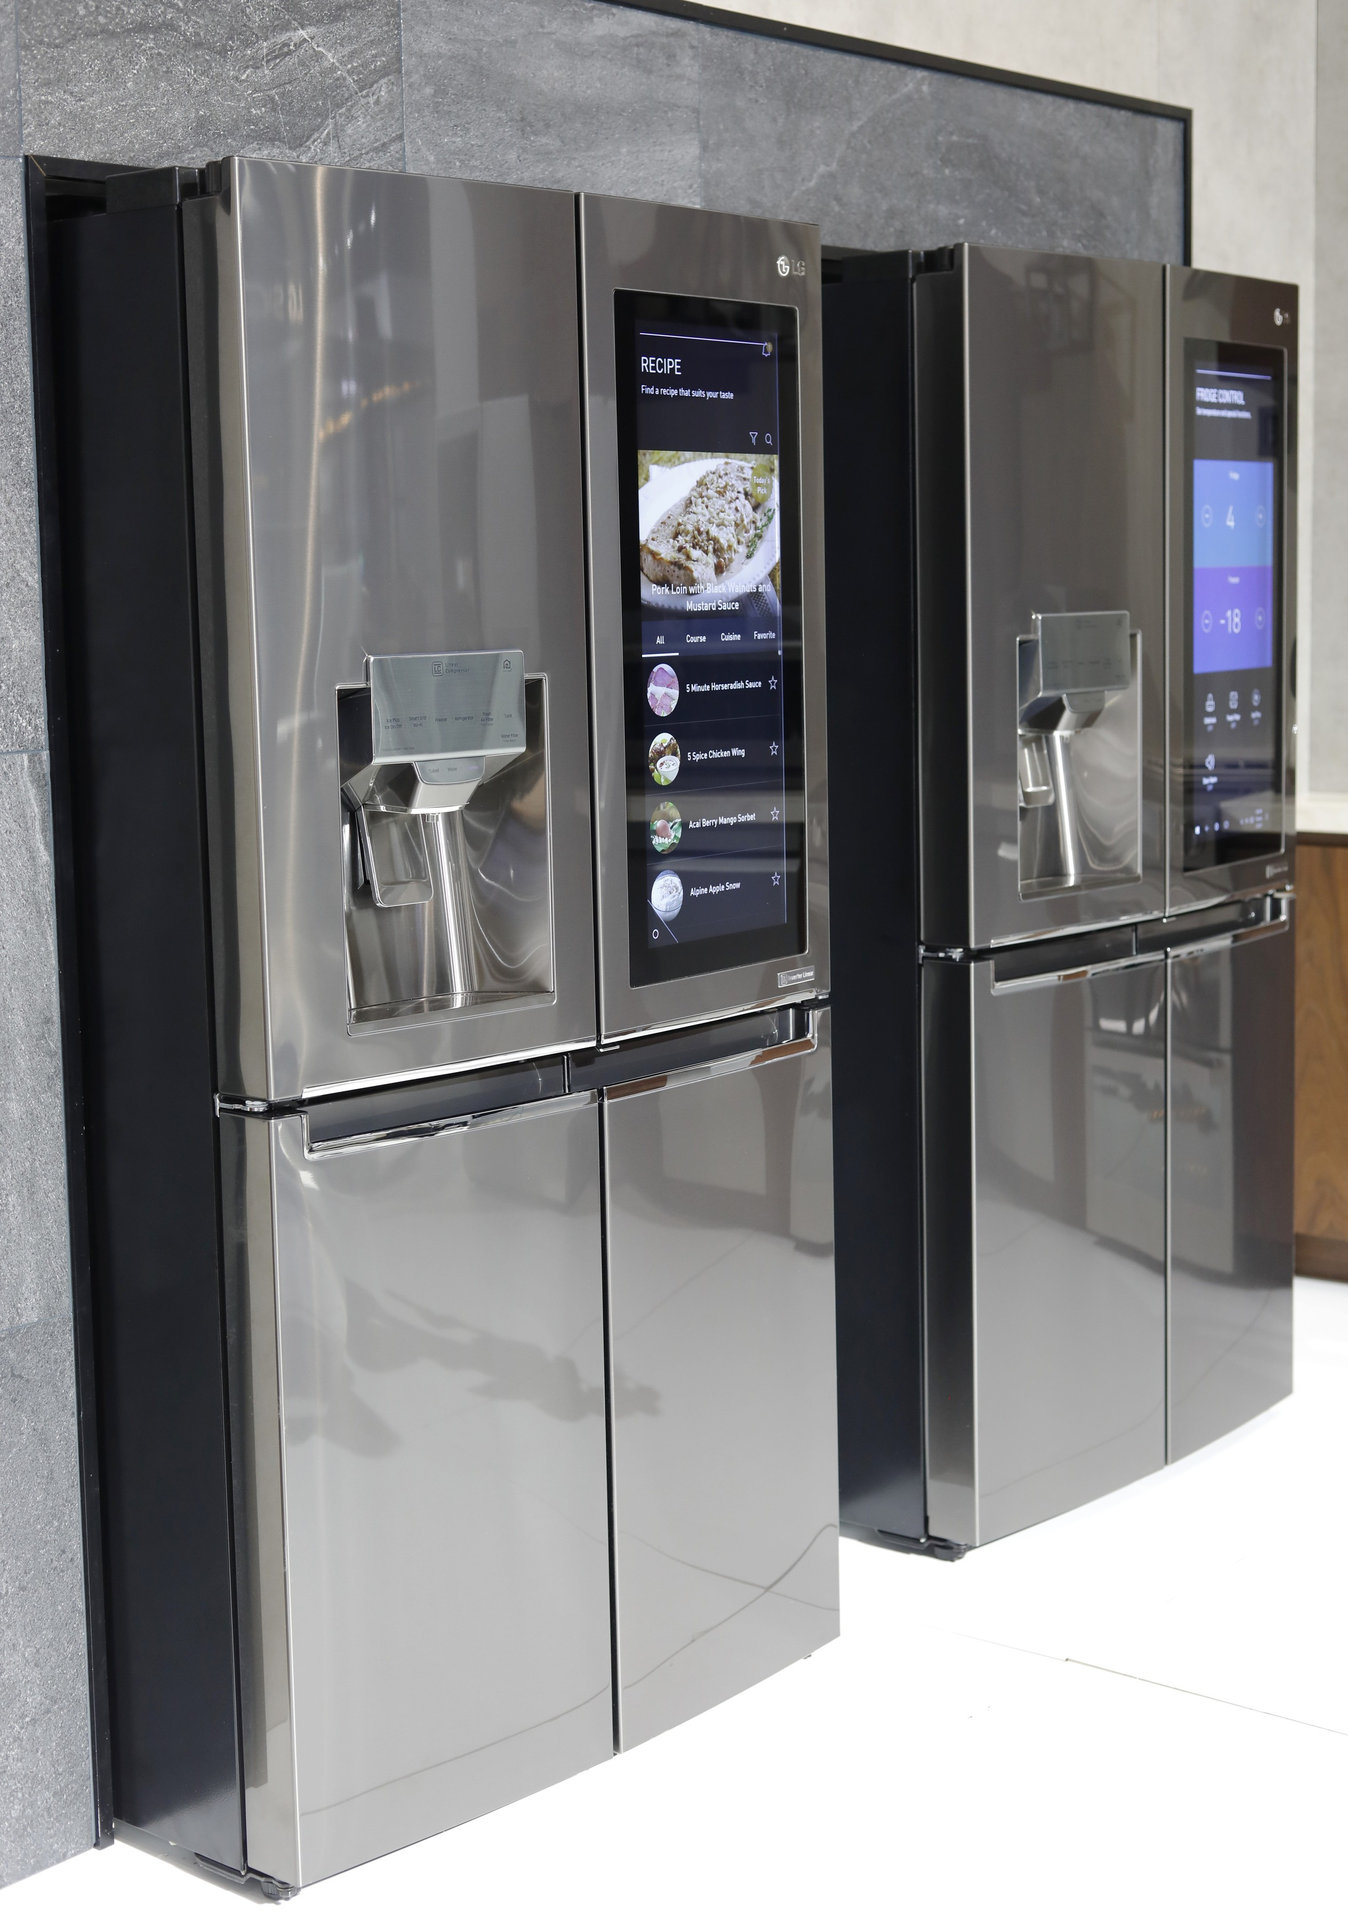 Smart fridge LG InstaView ThinQ 1.jpg